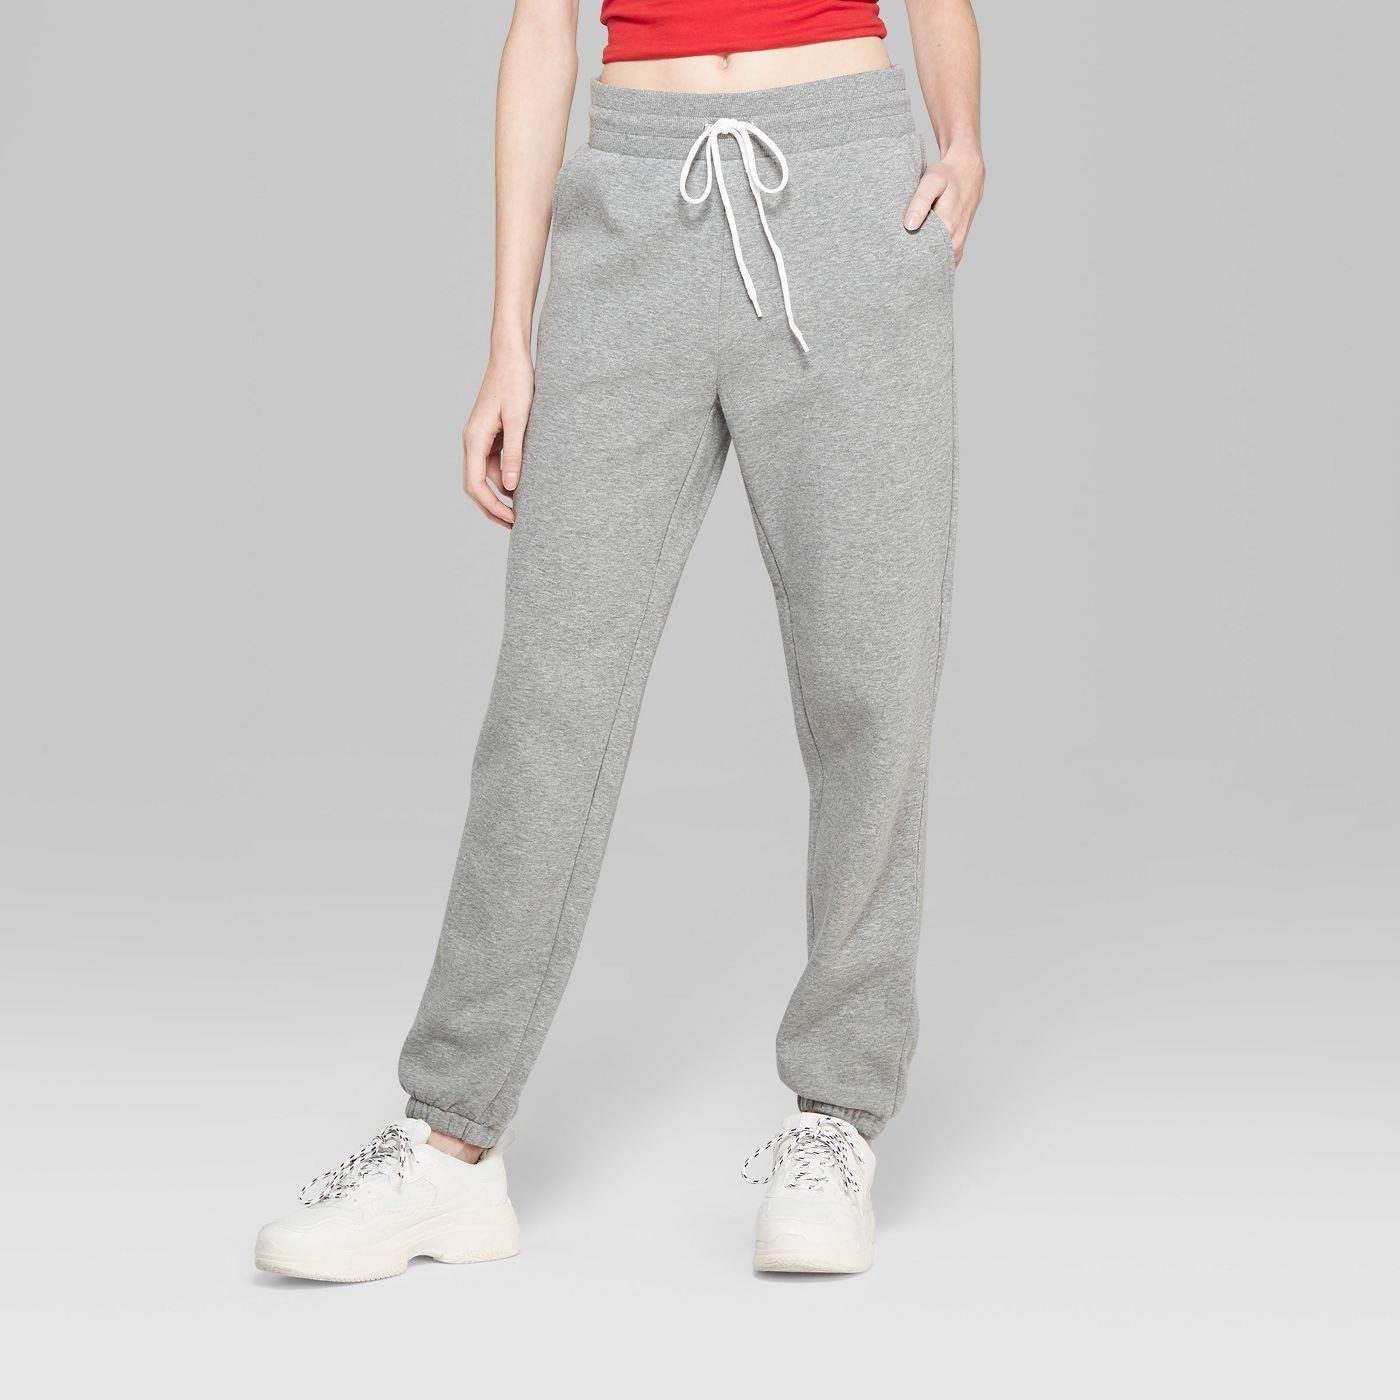 Model in gray sweatpants